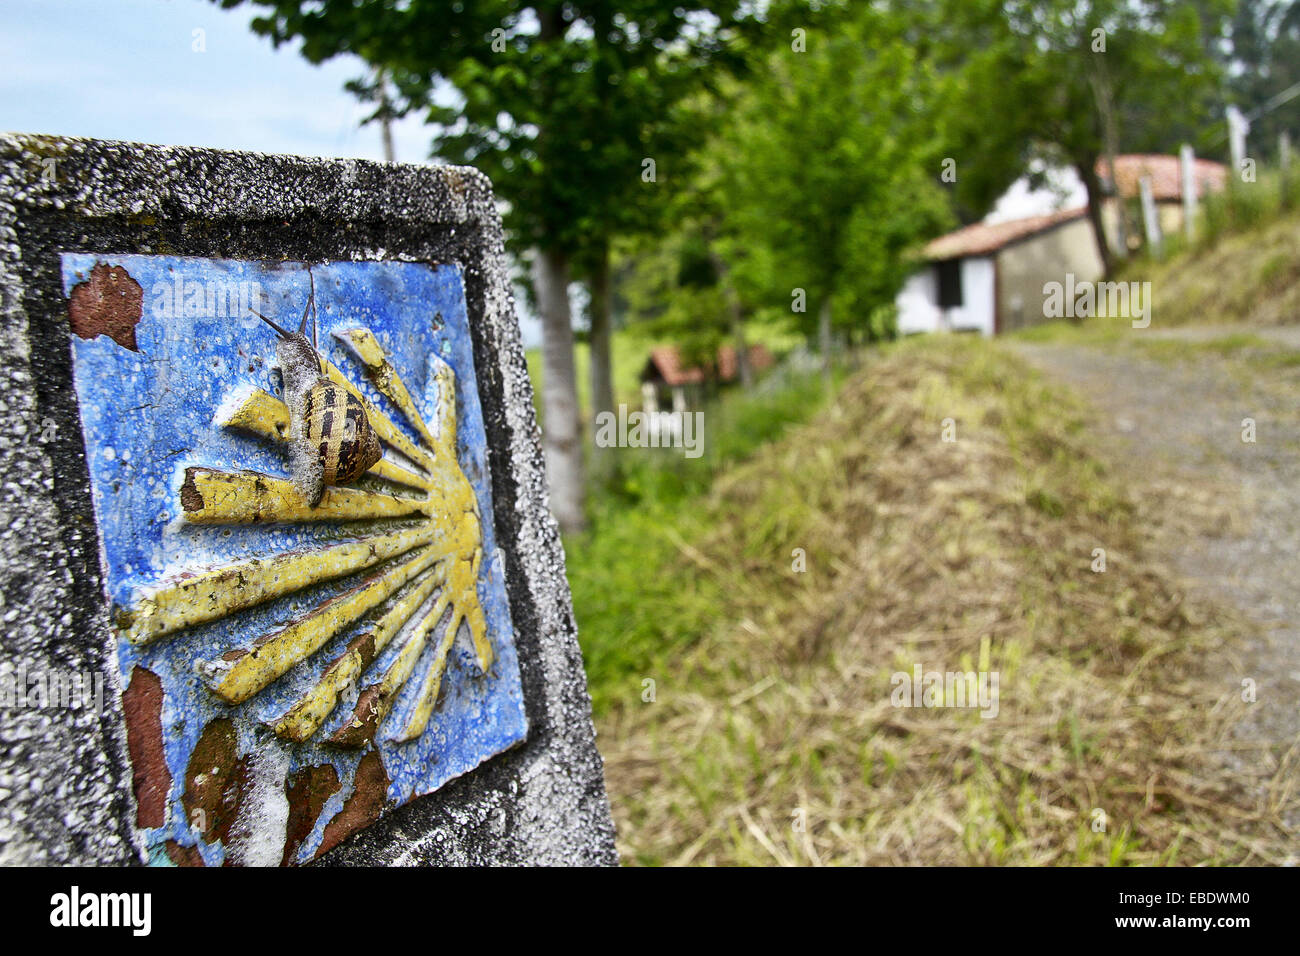 Snail in a sign at Primitive Saint James way, Asturias, Spain. - Stock Image